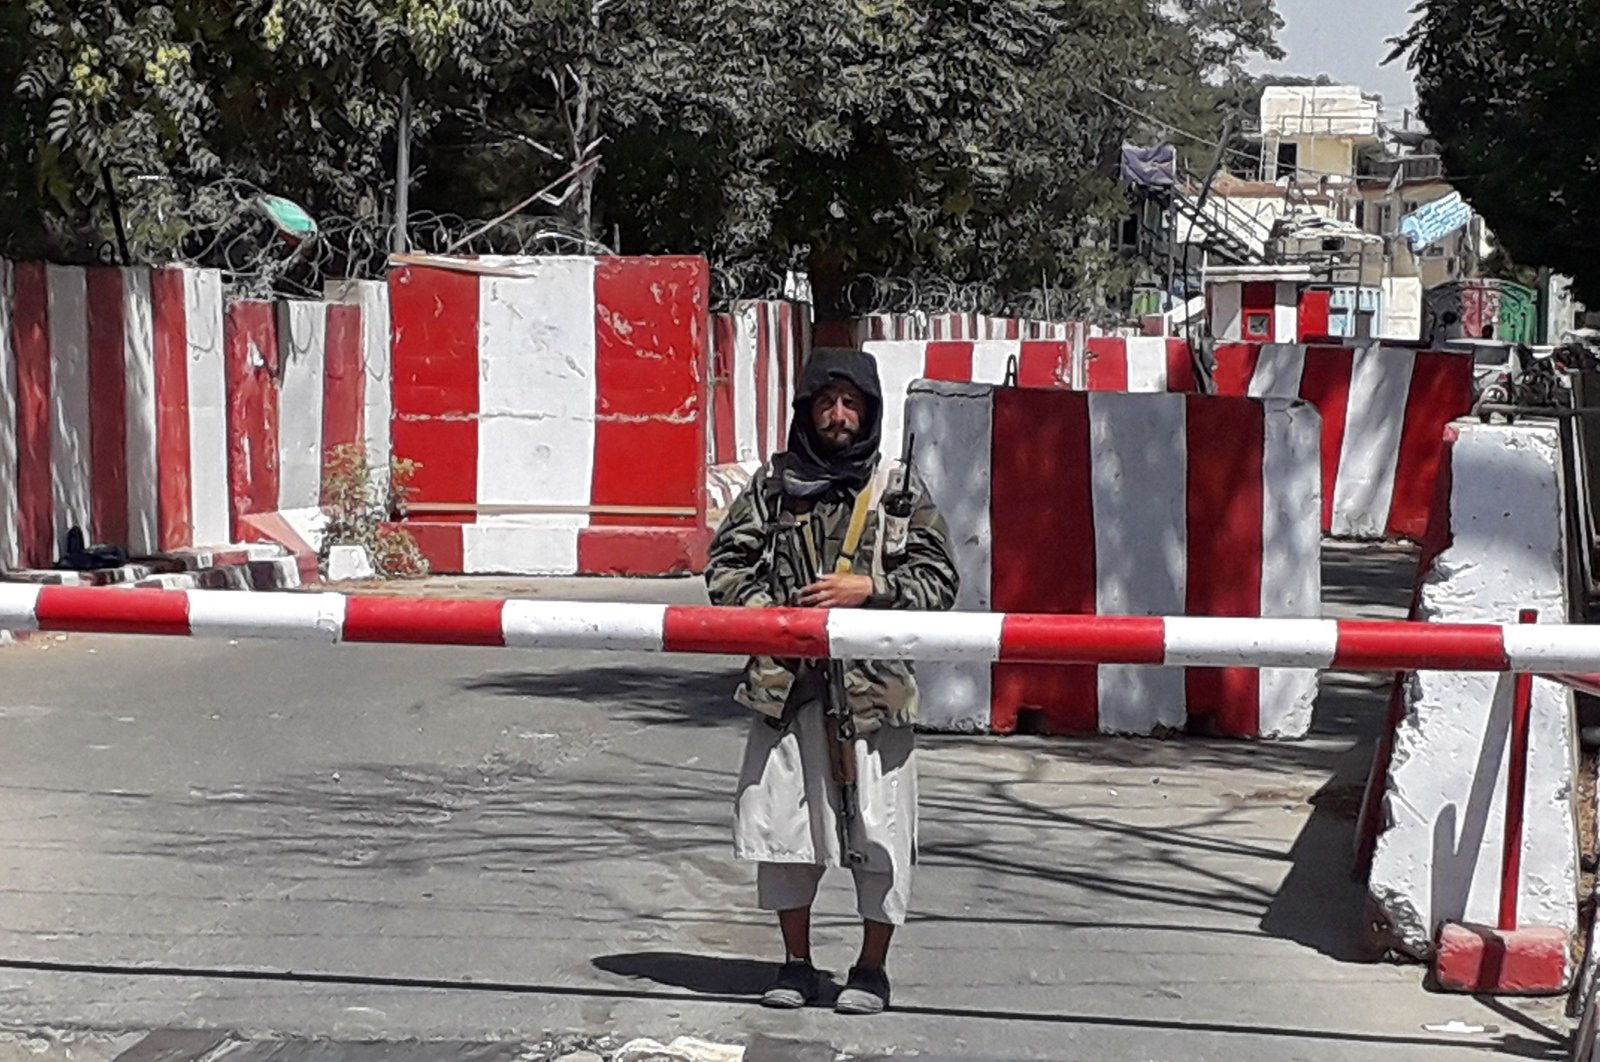 A Taliban fighter stands guard at the entrance of the police headquarters in Ghazni, Afghanistan, Aug. 12, 2021. (AFP Photo)